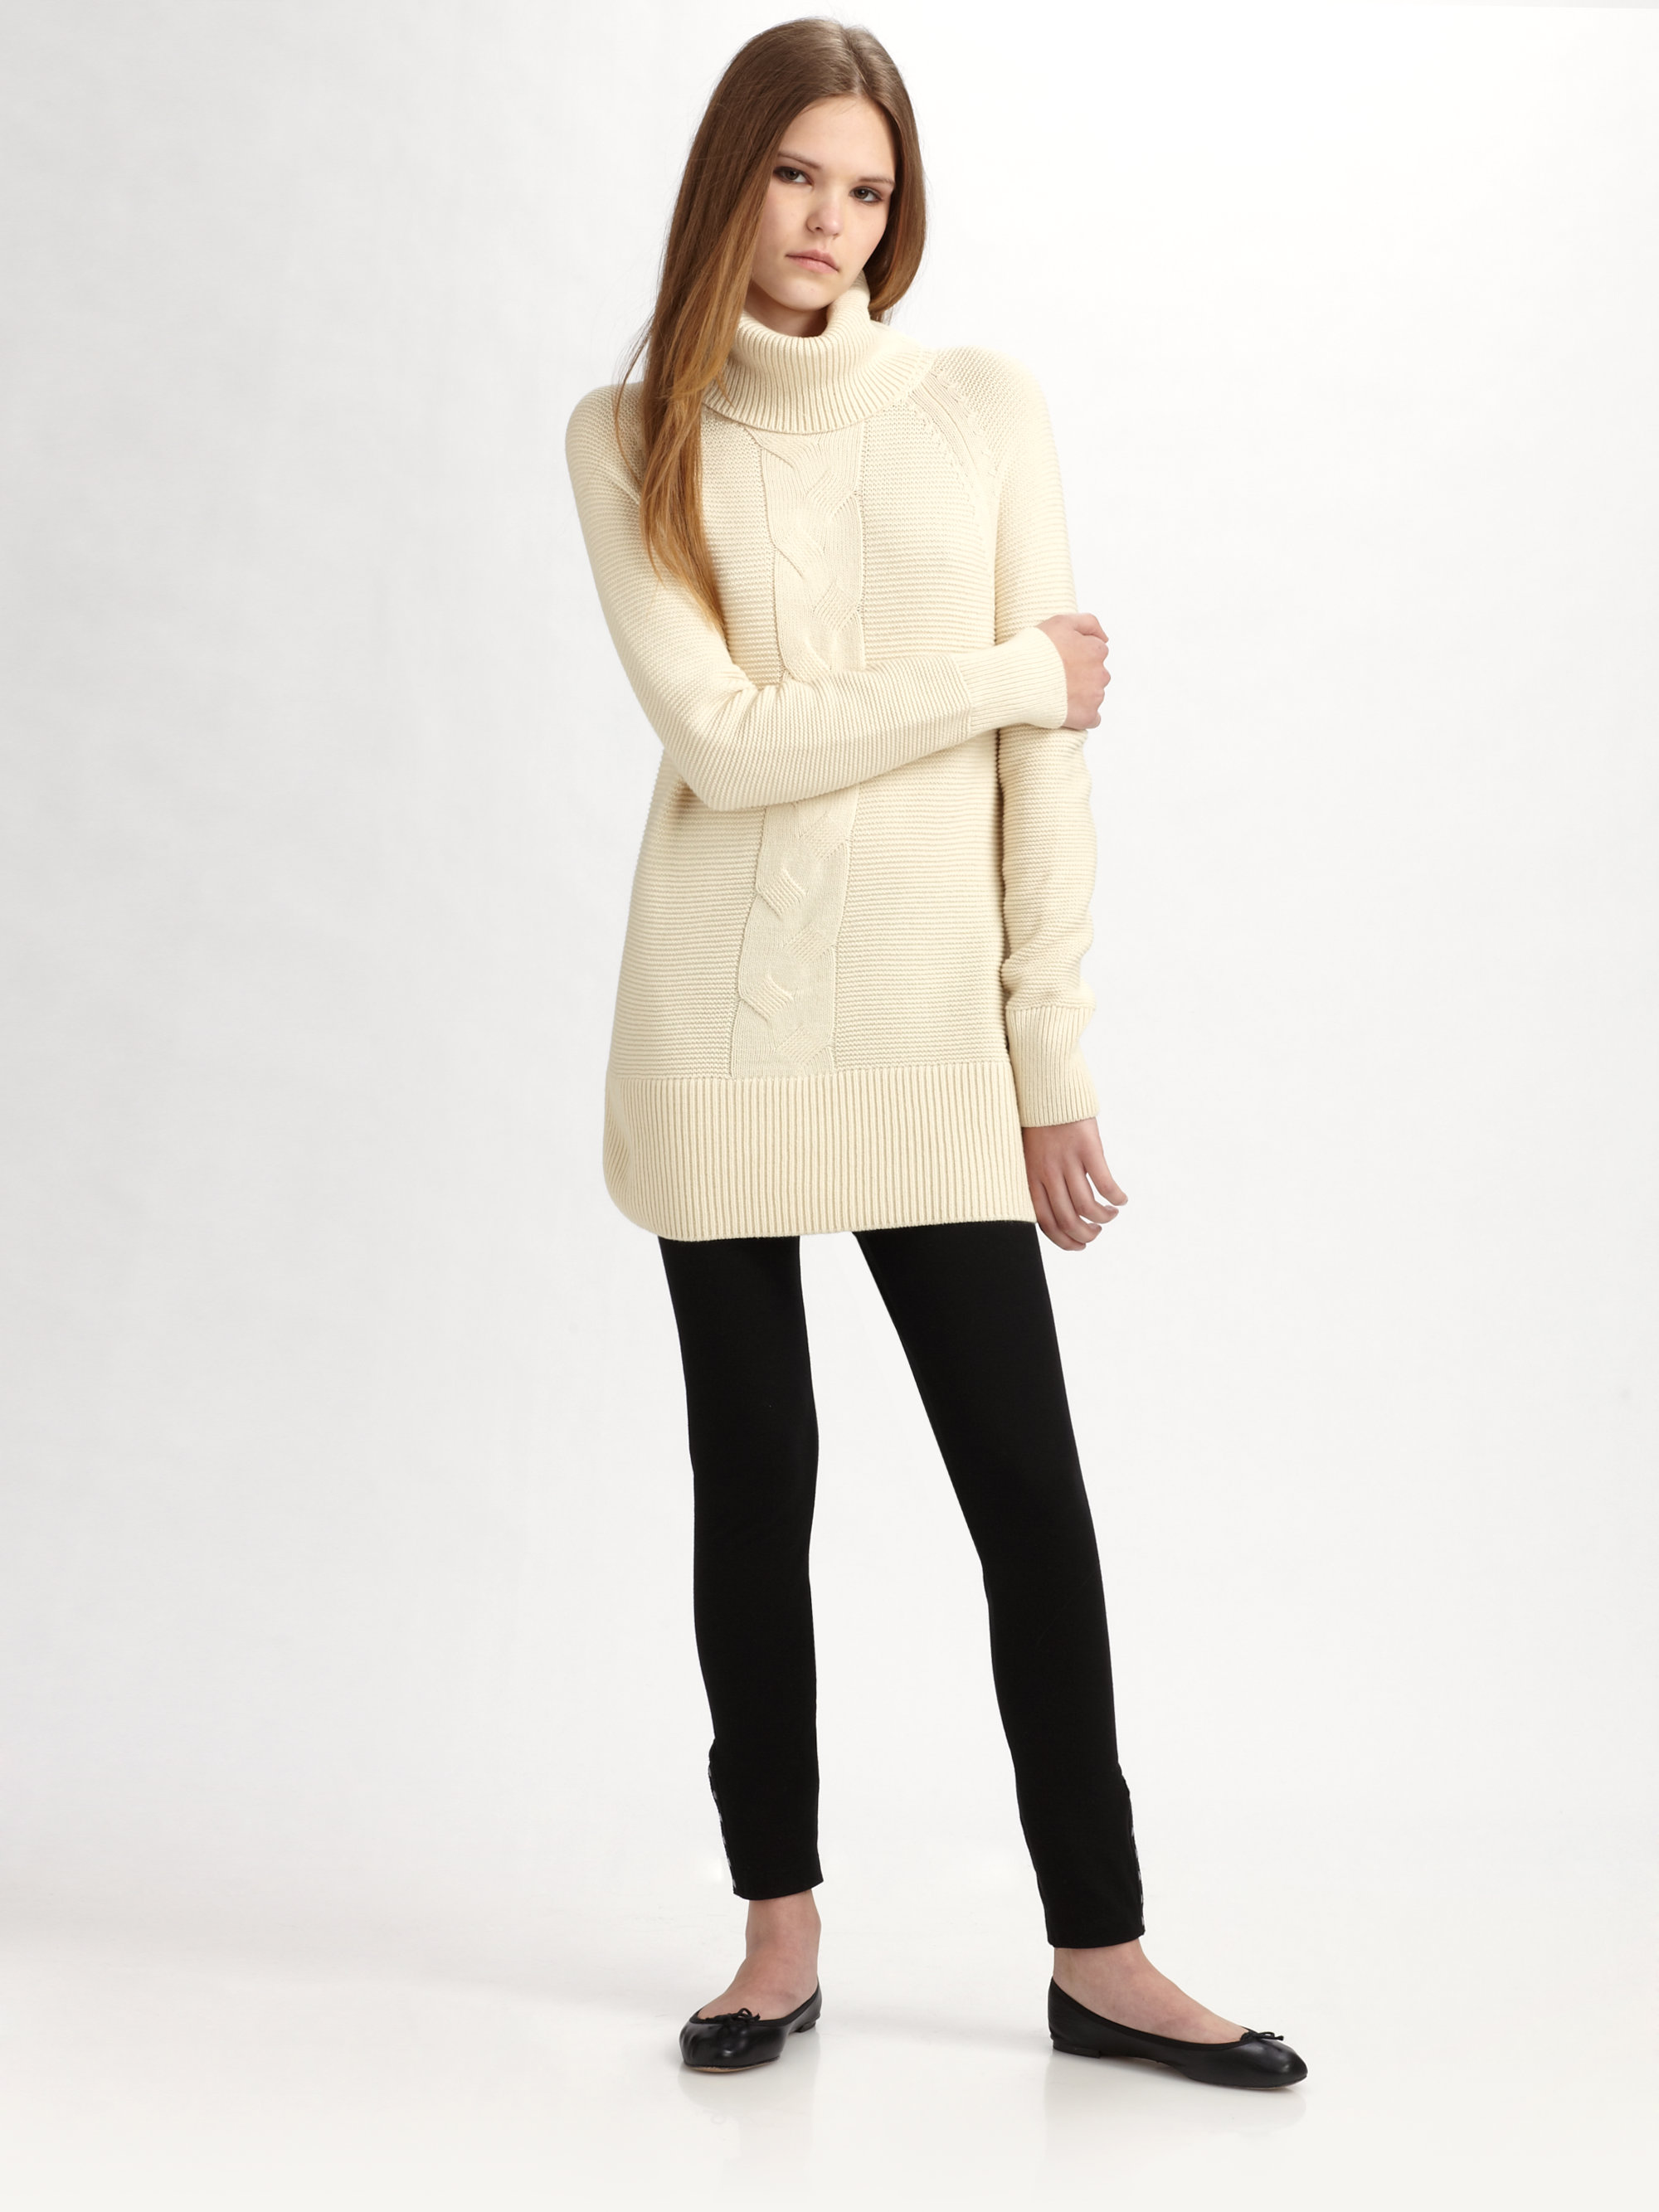 Lacoste Cable Knit Tunic Sweater in Natural | Lyst